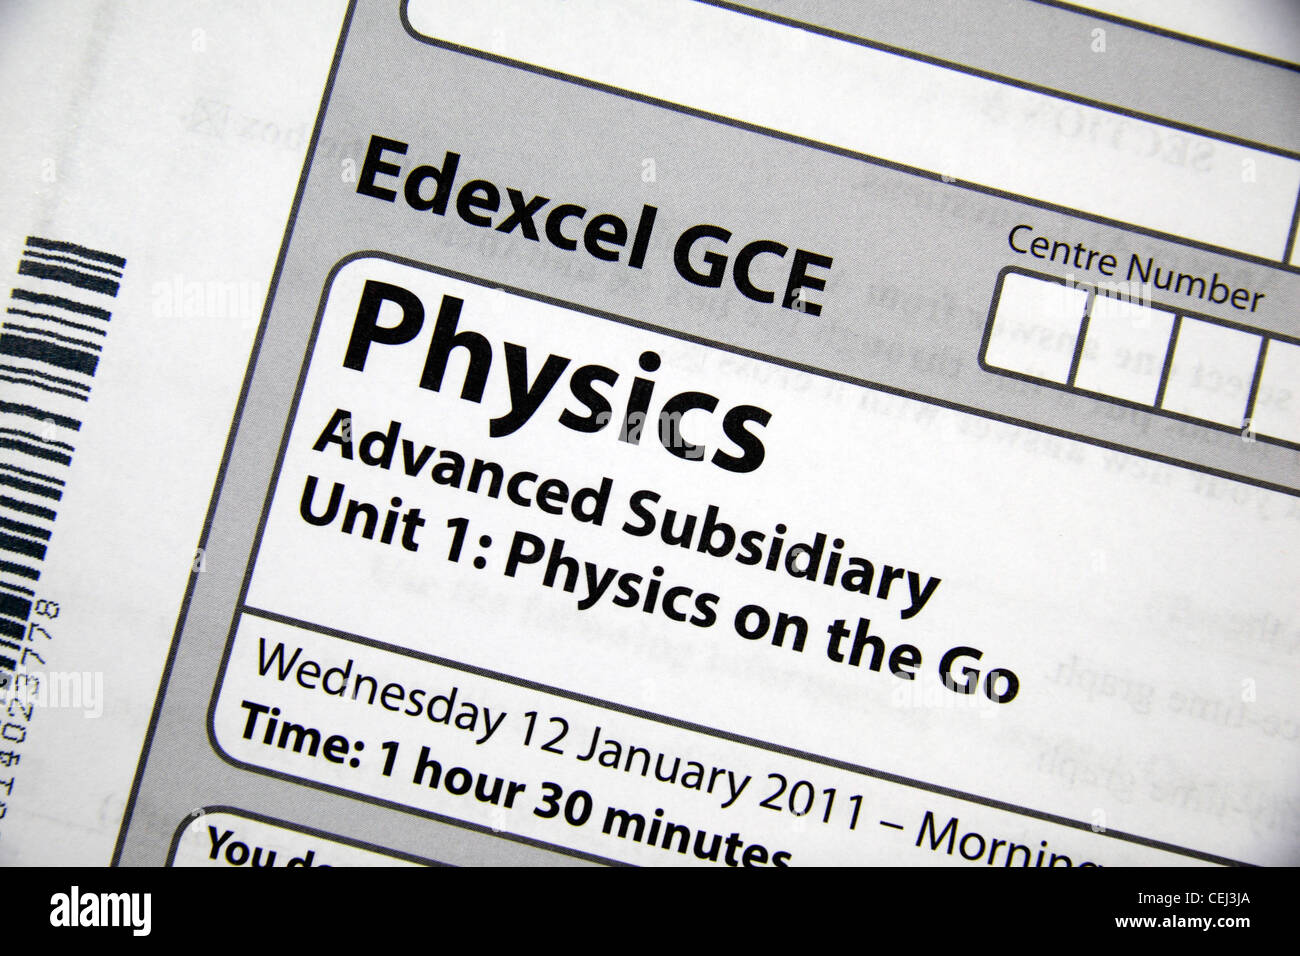 edexcel physics a level unit 3 coursework The advancing physics course enables candidates to learn both about  fundamental physical concepts and about physics in everyday and technological  settings.